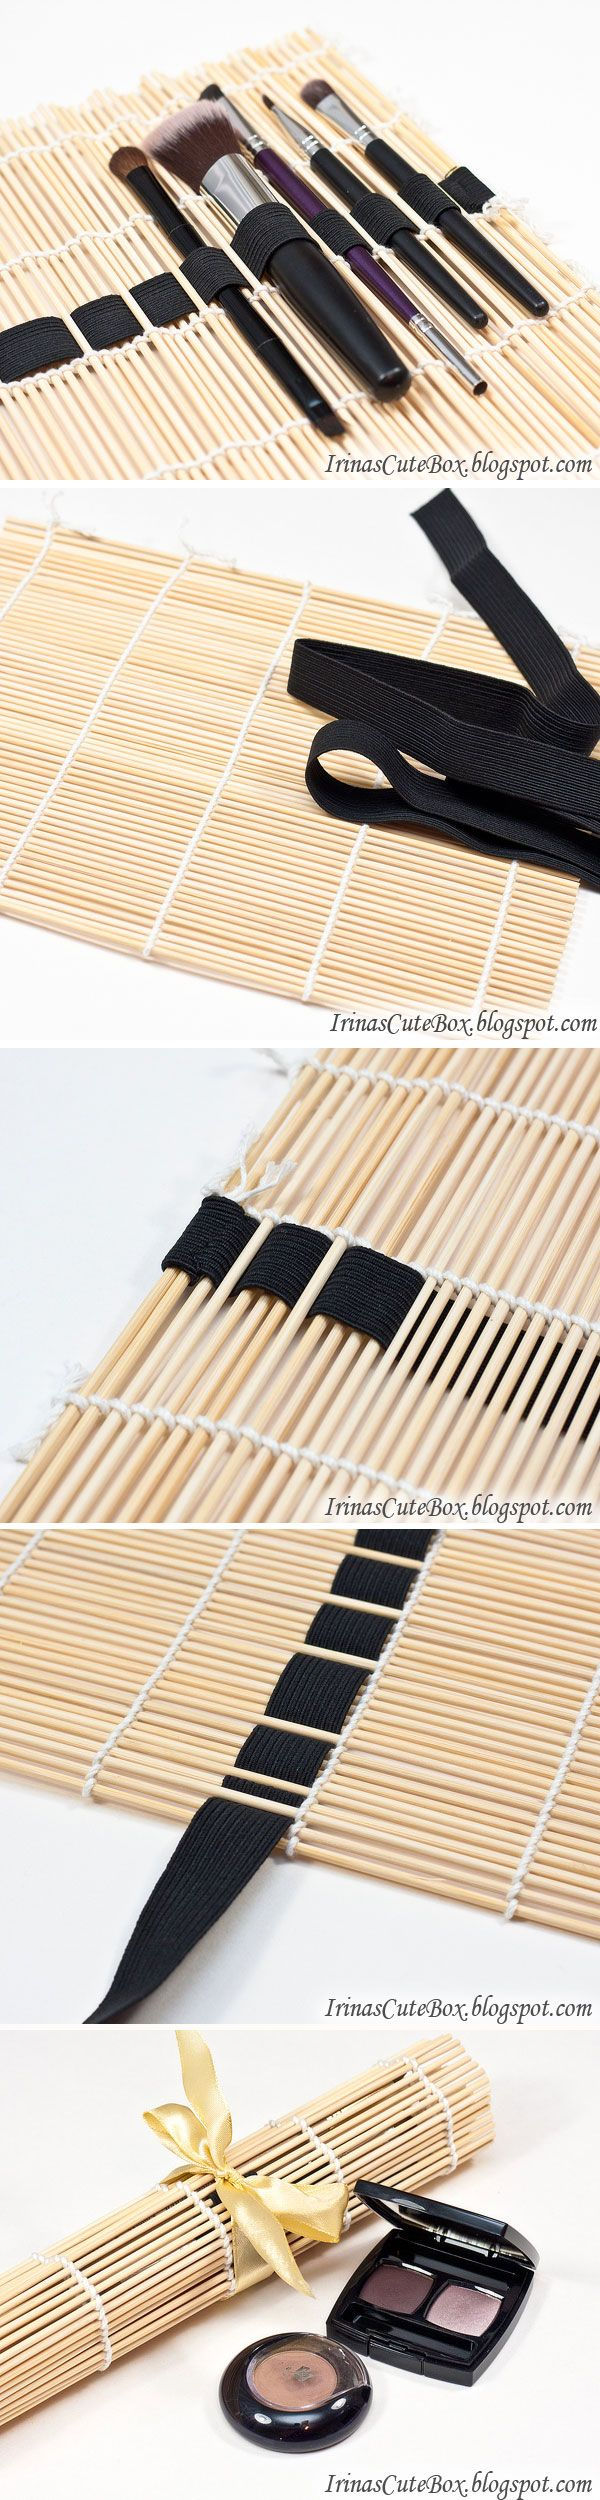 A tutorial how to make brush organizer of sushi mat. Click here for full tutorial: http://irinascutebox.blogspot.com/2013/02/how-to-make-brush-organizer.html